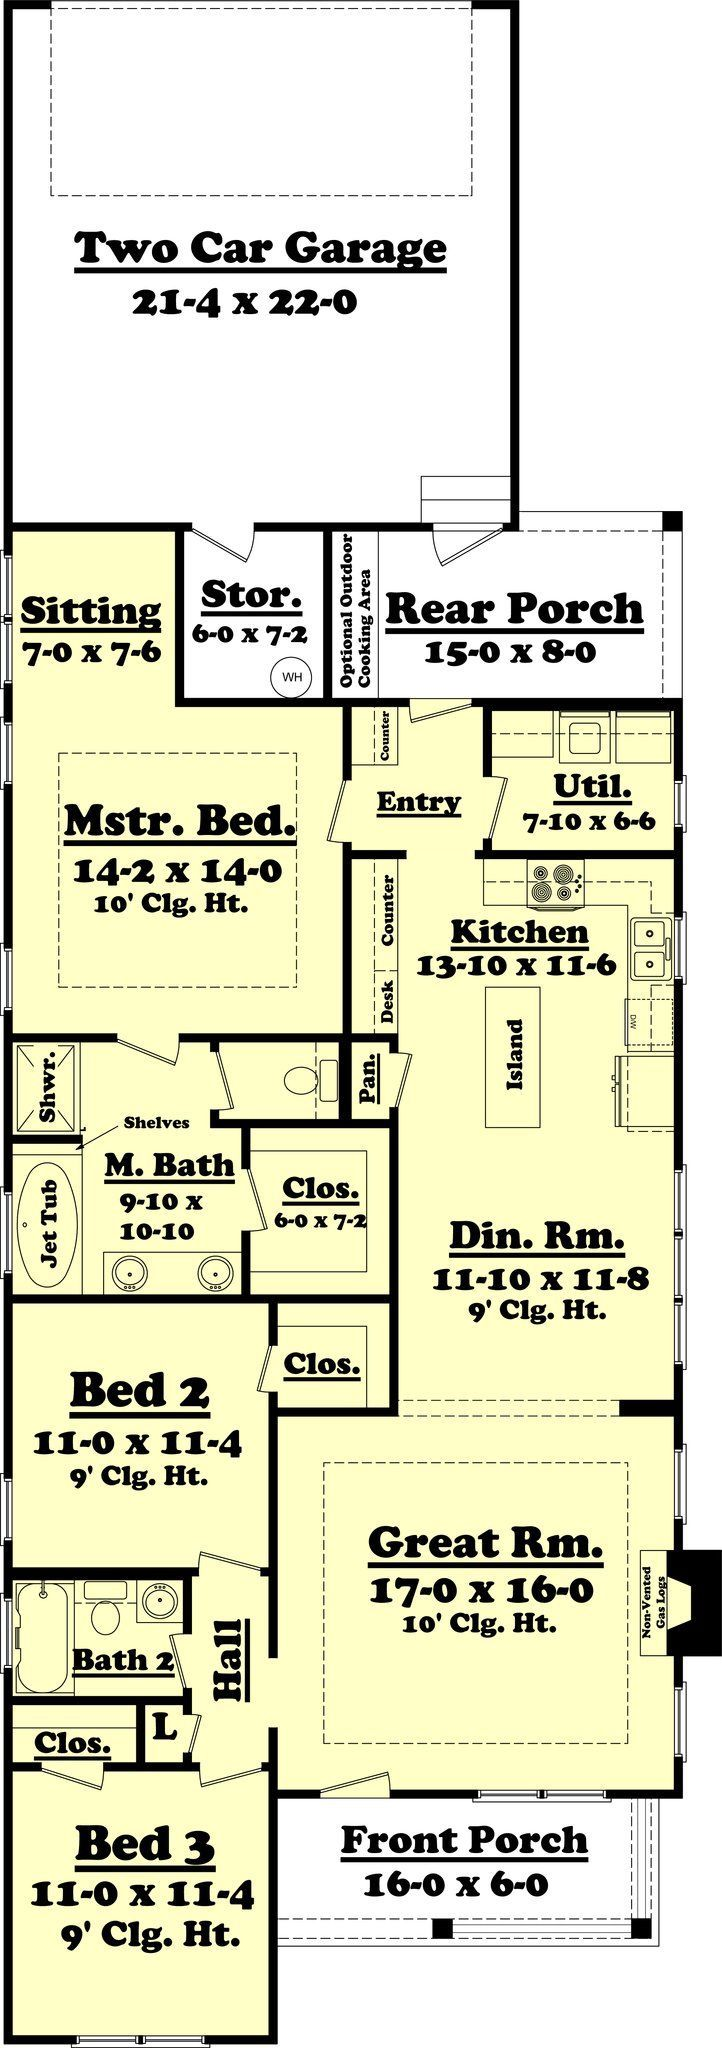 This beautiful narrow lot house plan is loaded with features. It offers 3 large bedrooms, 2 bathrooms, a large great room, and open dining/kitchen concept.